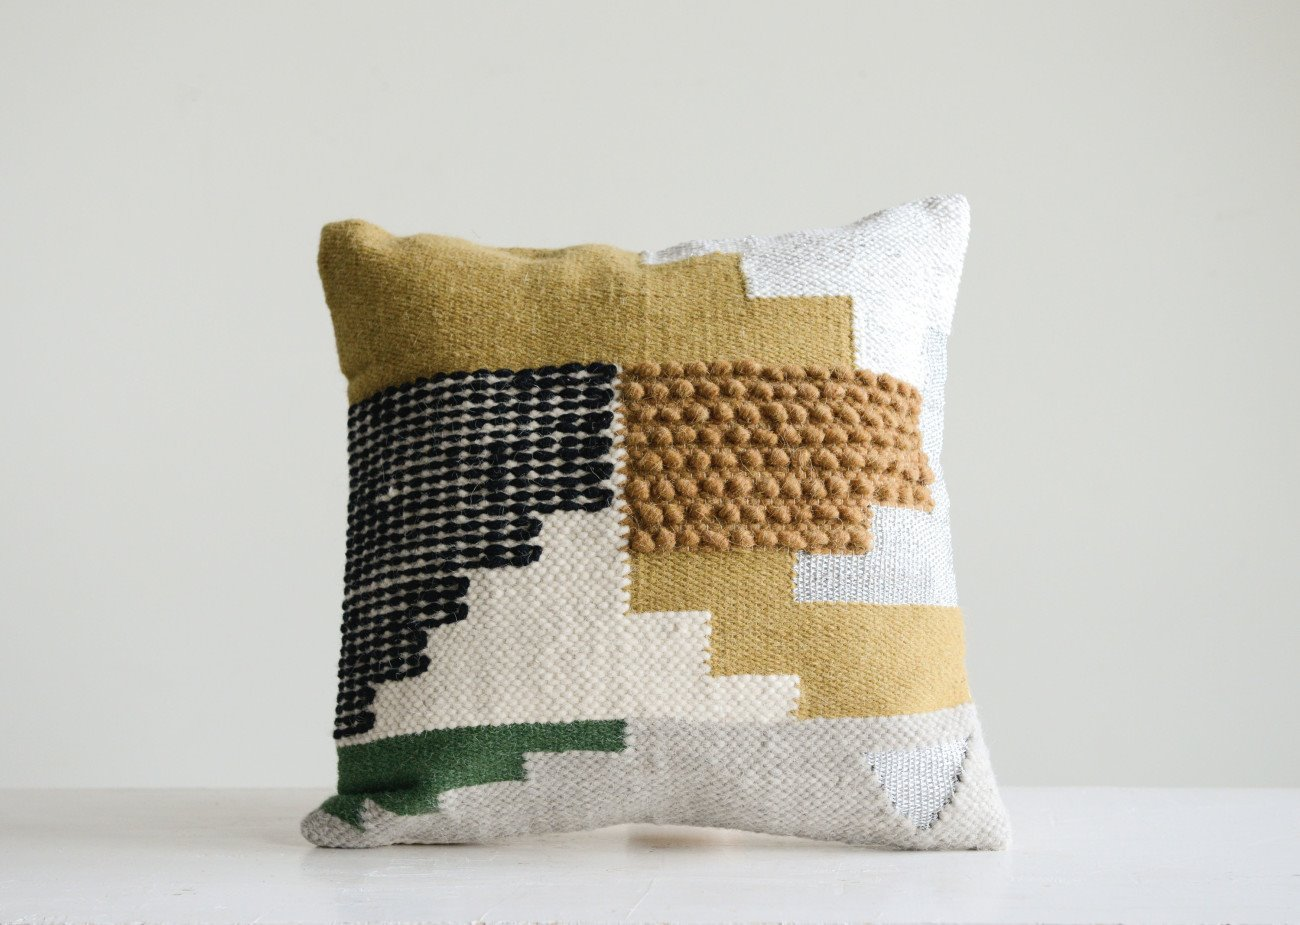 Handwoven White Wool Kilim Pillow with Yellow, Green & Black Accents